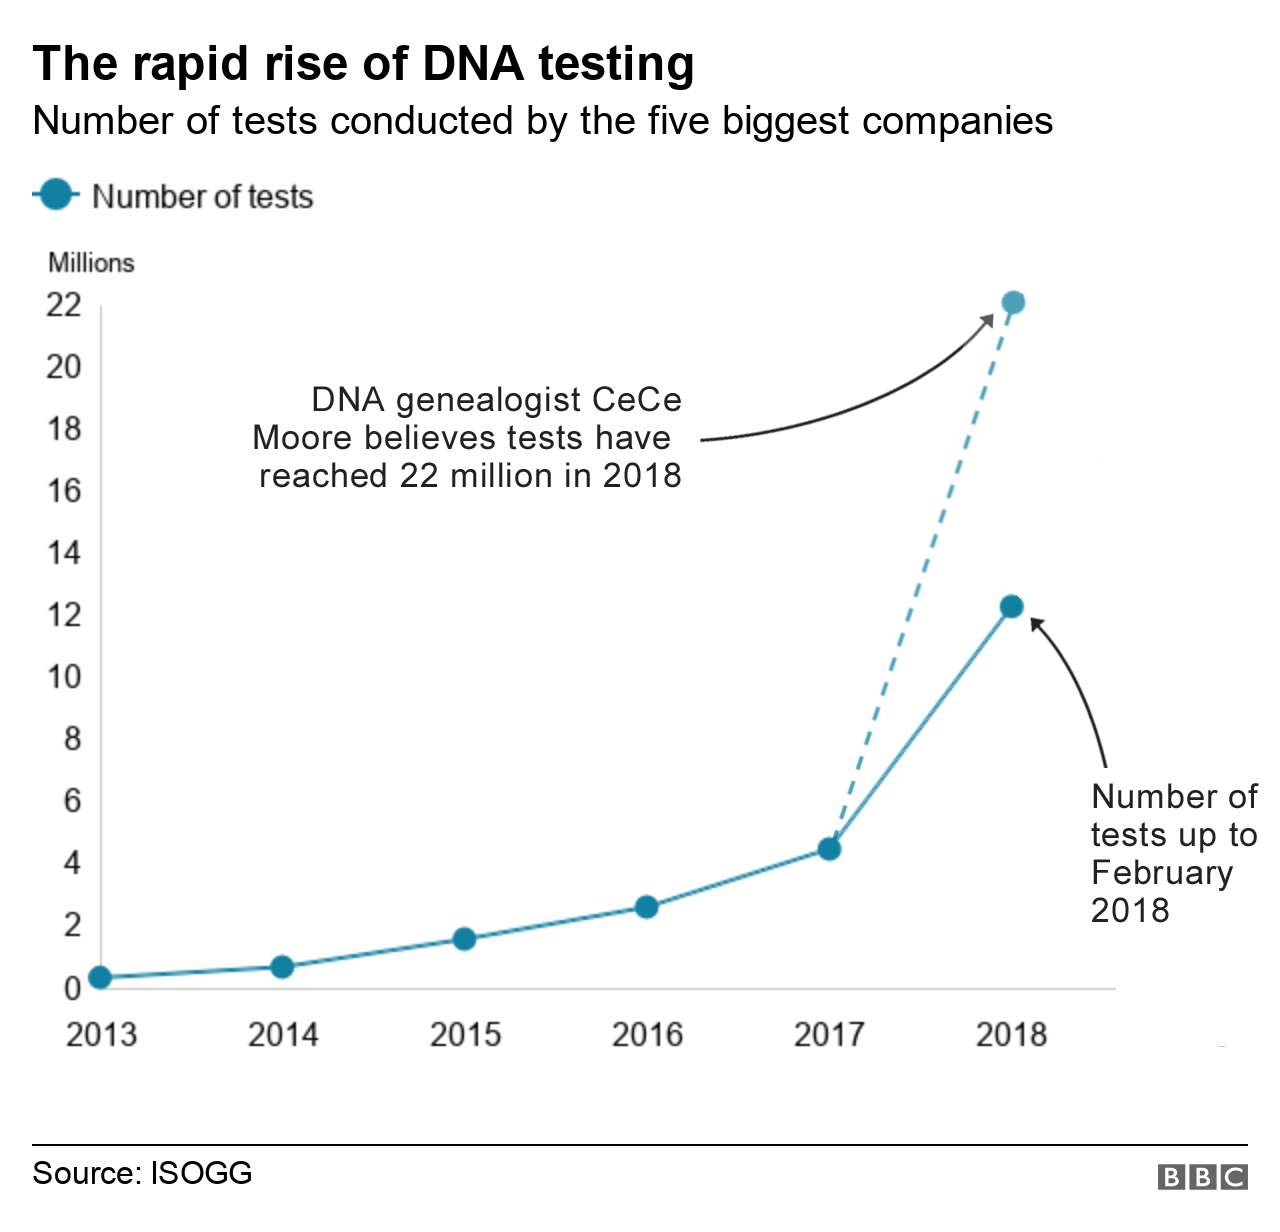 Graph showing the rapid rise of DNA testing